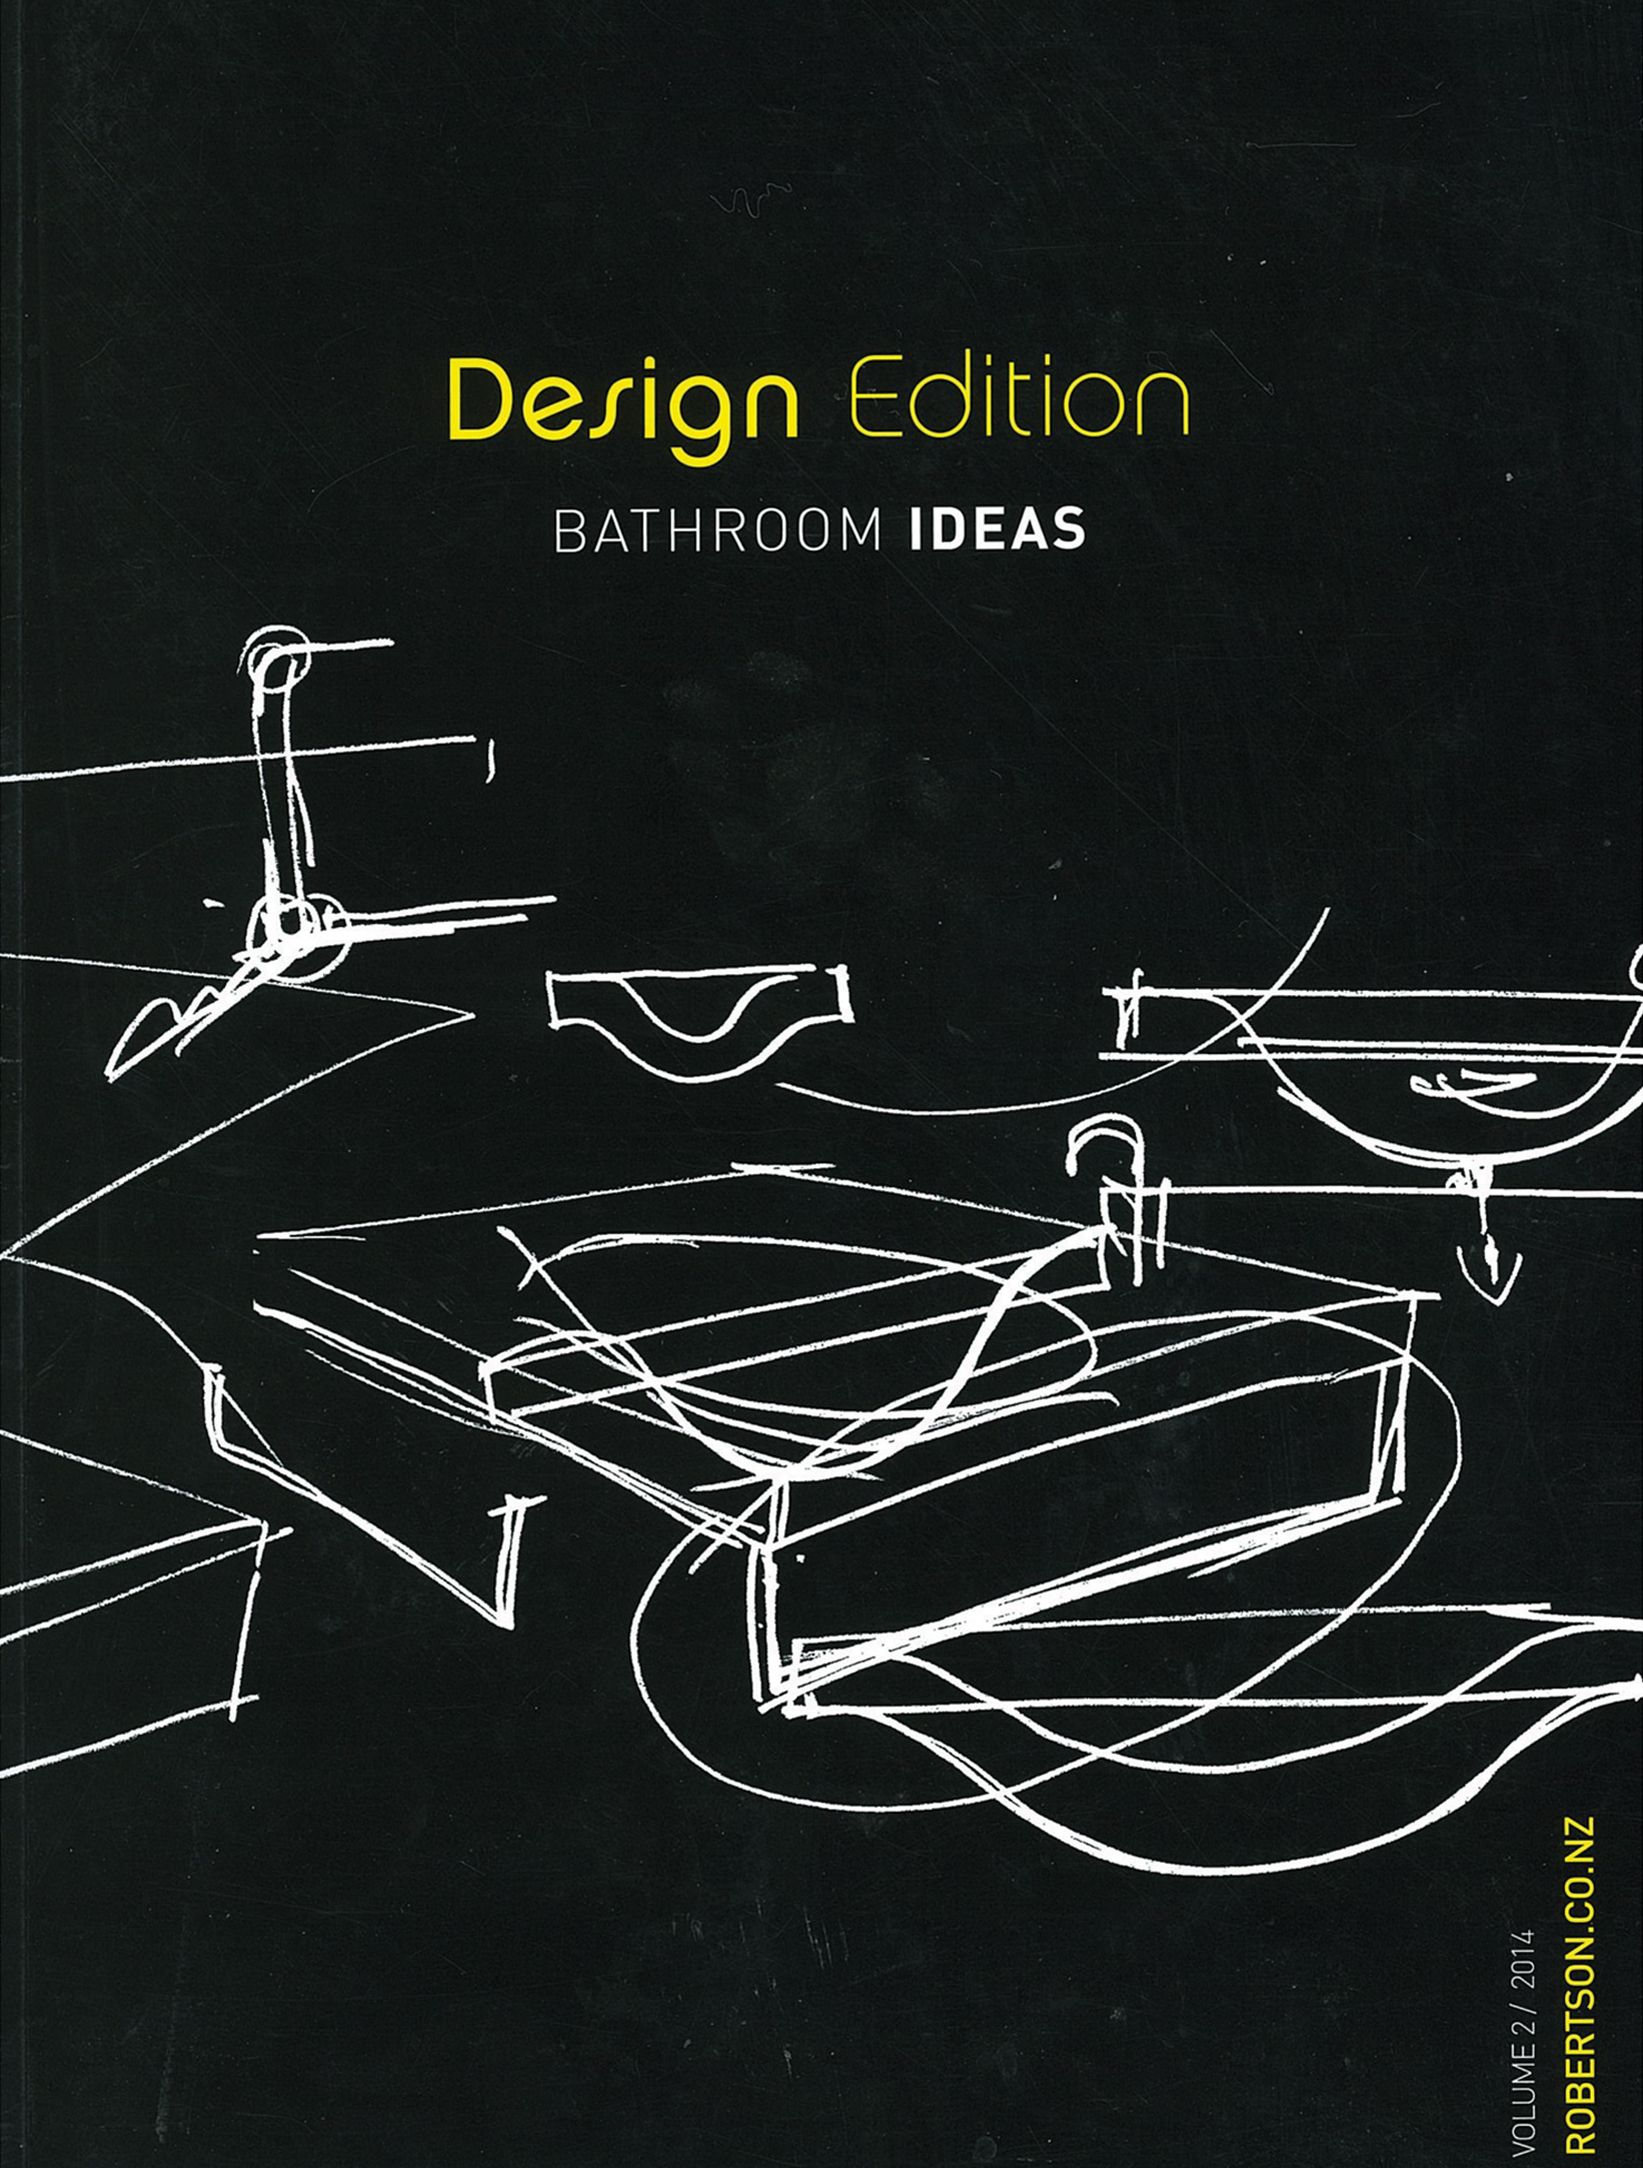 Design Edition: Bathroom Ideas